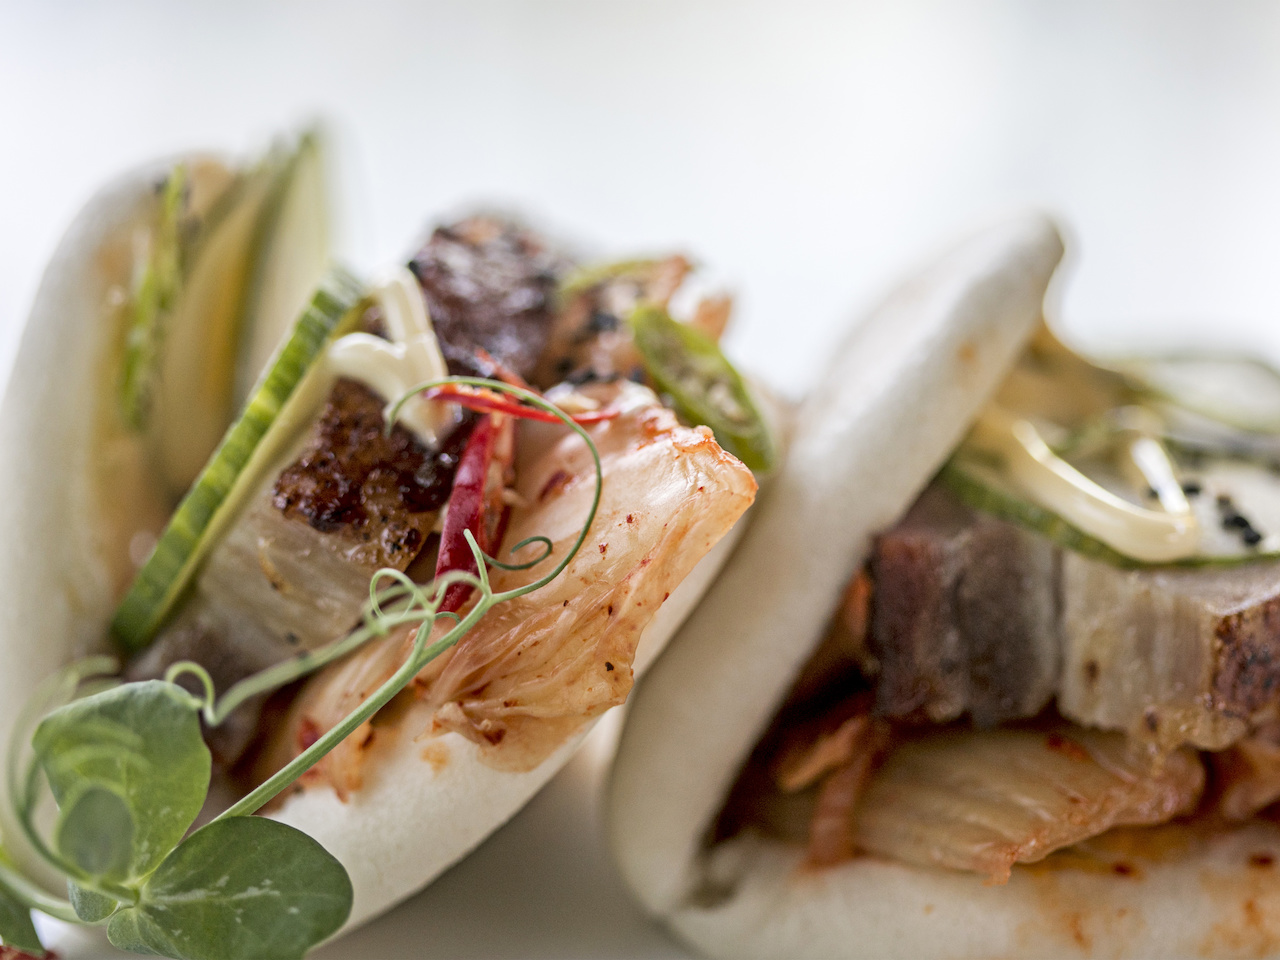 Pork belly buns feature house kimchi, spicy mayo and serrano peppers for $10.